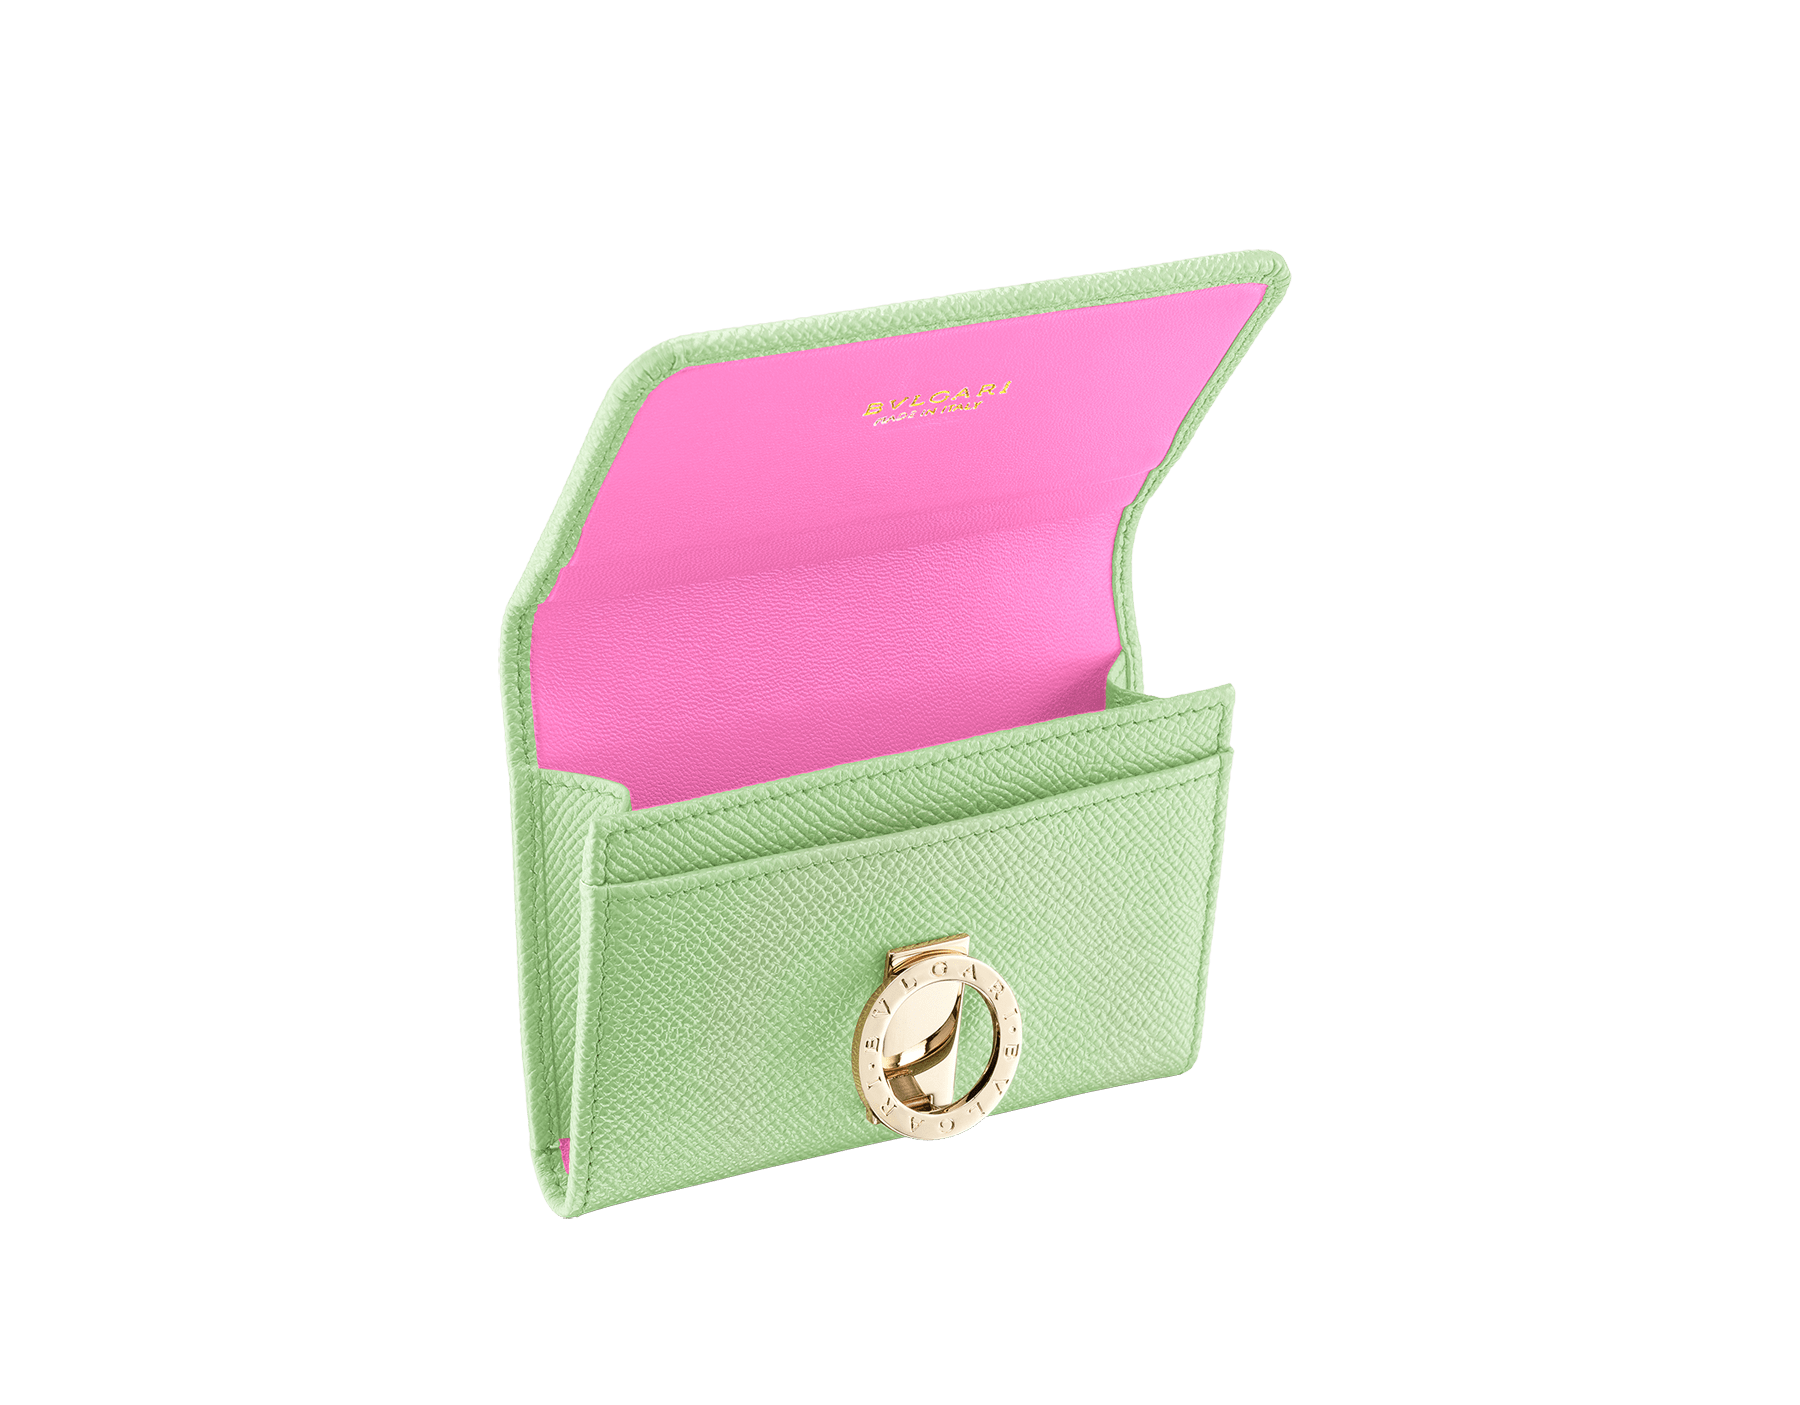 """""""BVLGARI BVLGARI"""" business card holder in mint bright grain calf leather and taffy quartz nappa leather. Iconic logo clip closure in light gold plated brass. 579-BC-HOLDER-BGCLc image 2"""